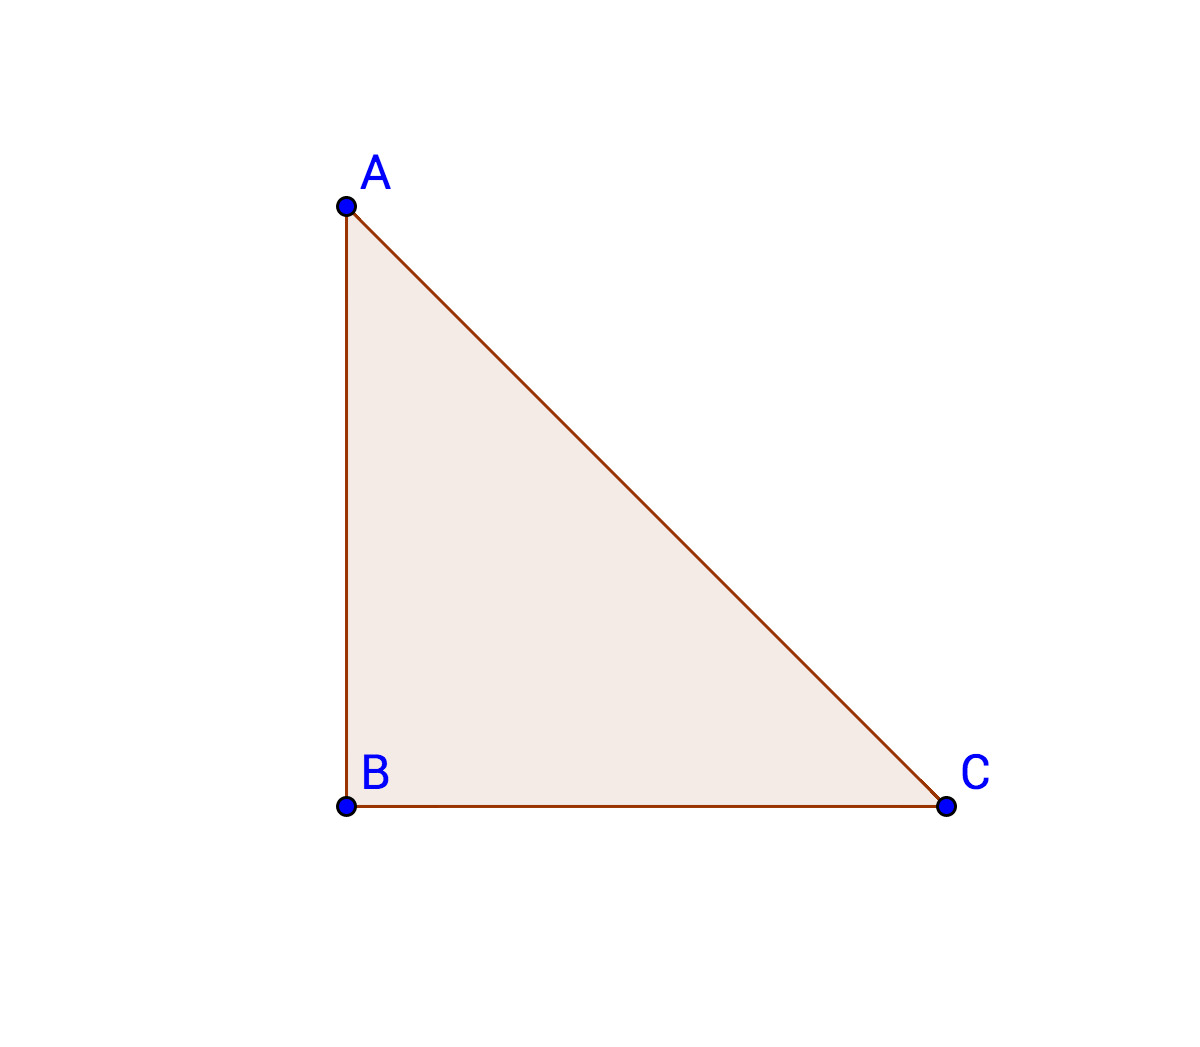 How To Find The Perimeter Of A 45 45 90 Right Isosceles